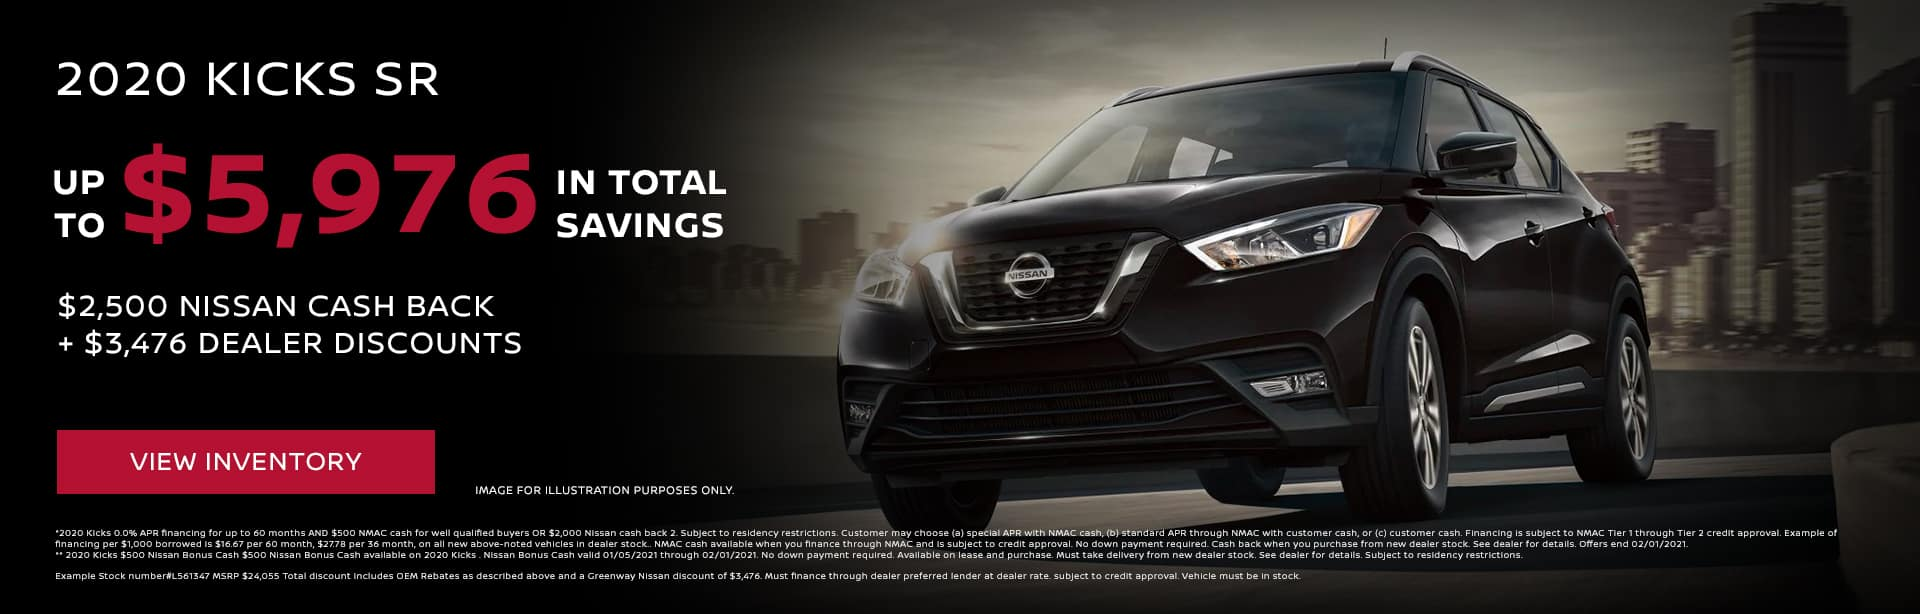 2020 Kick SR Up to $5,976 in total savings* ($2,500 Nissan Cash Back + $3,476 Dealer Discounts)